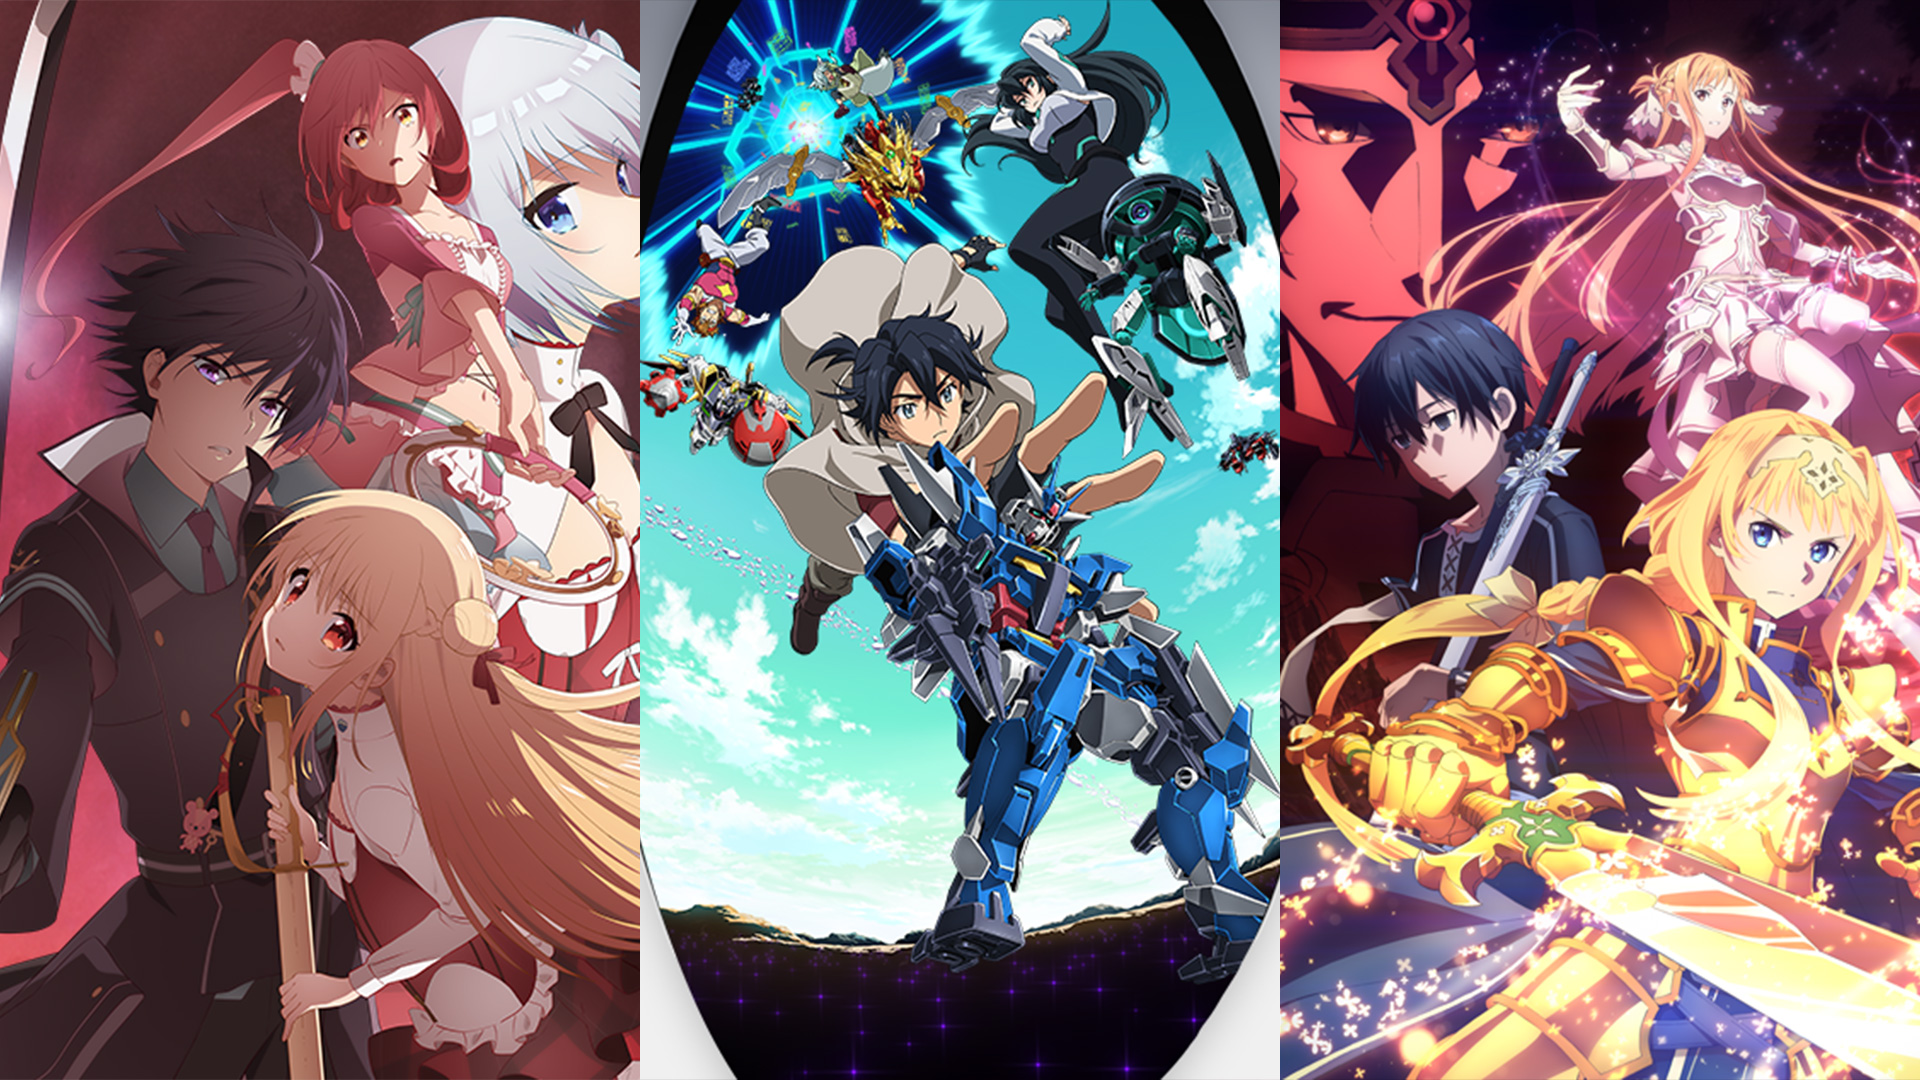 Three More Anime Set To Premiere On Crunchyroll This Week